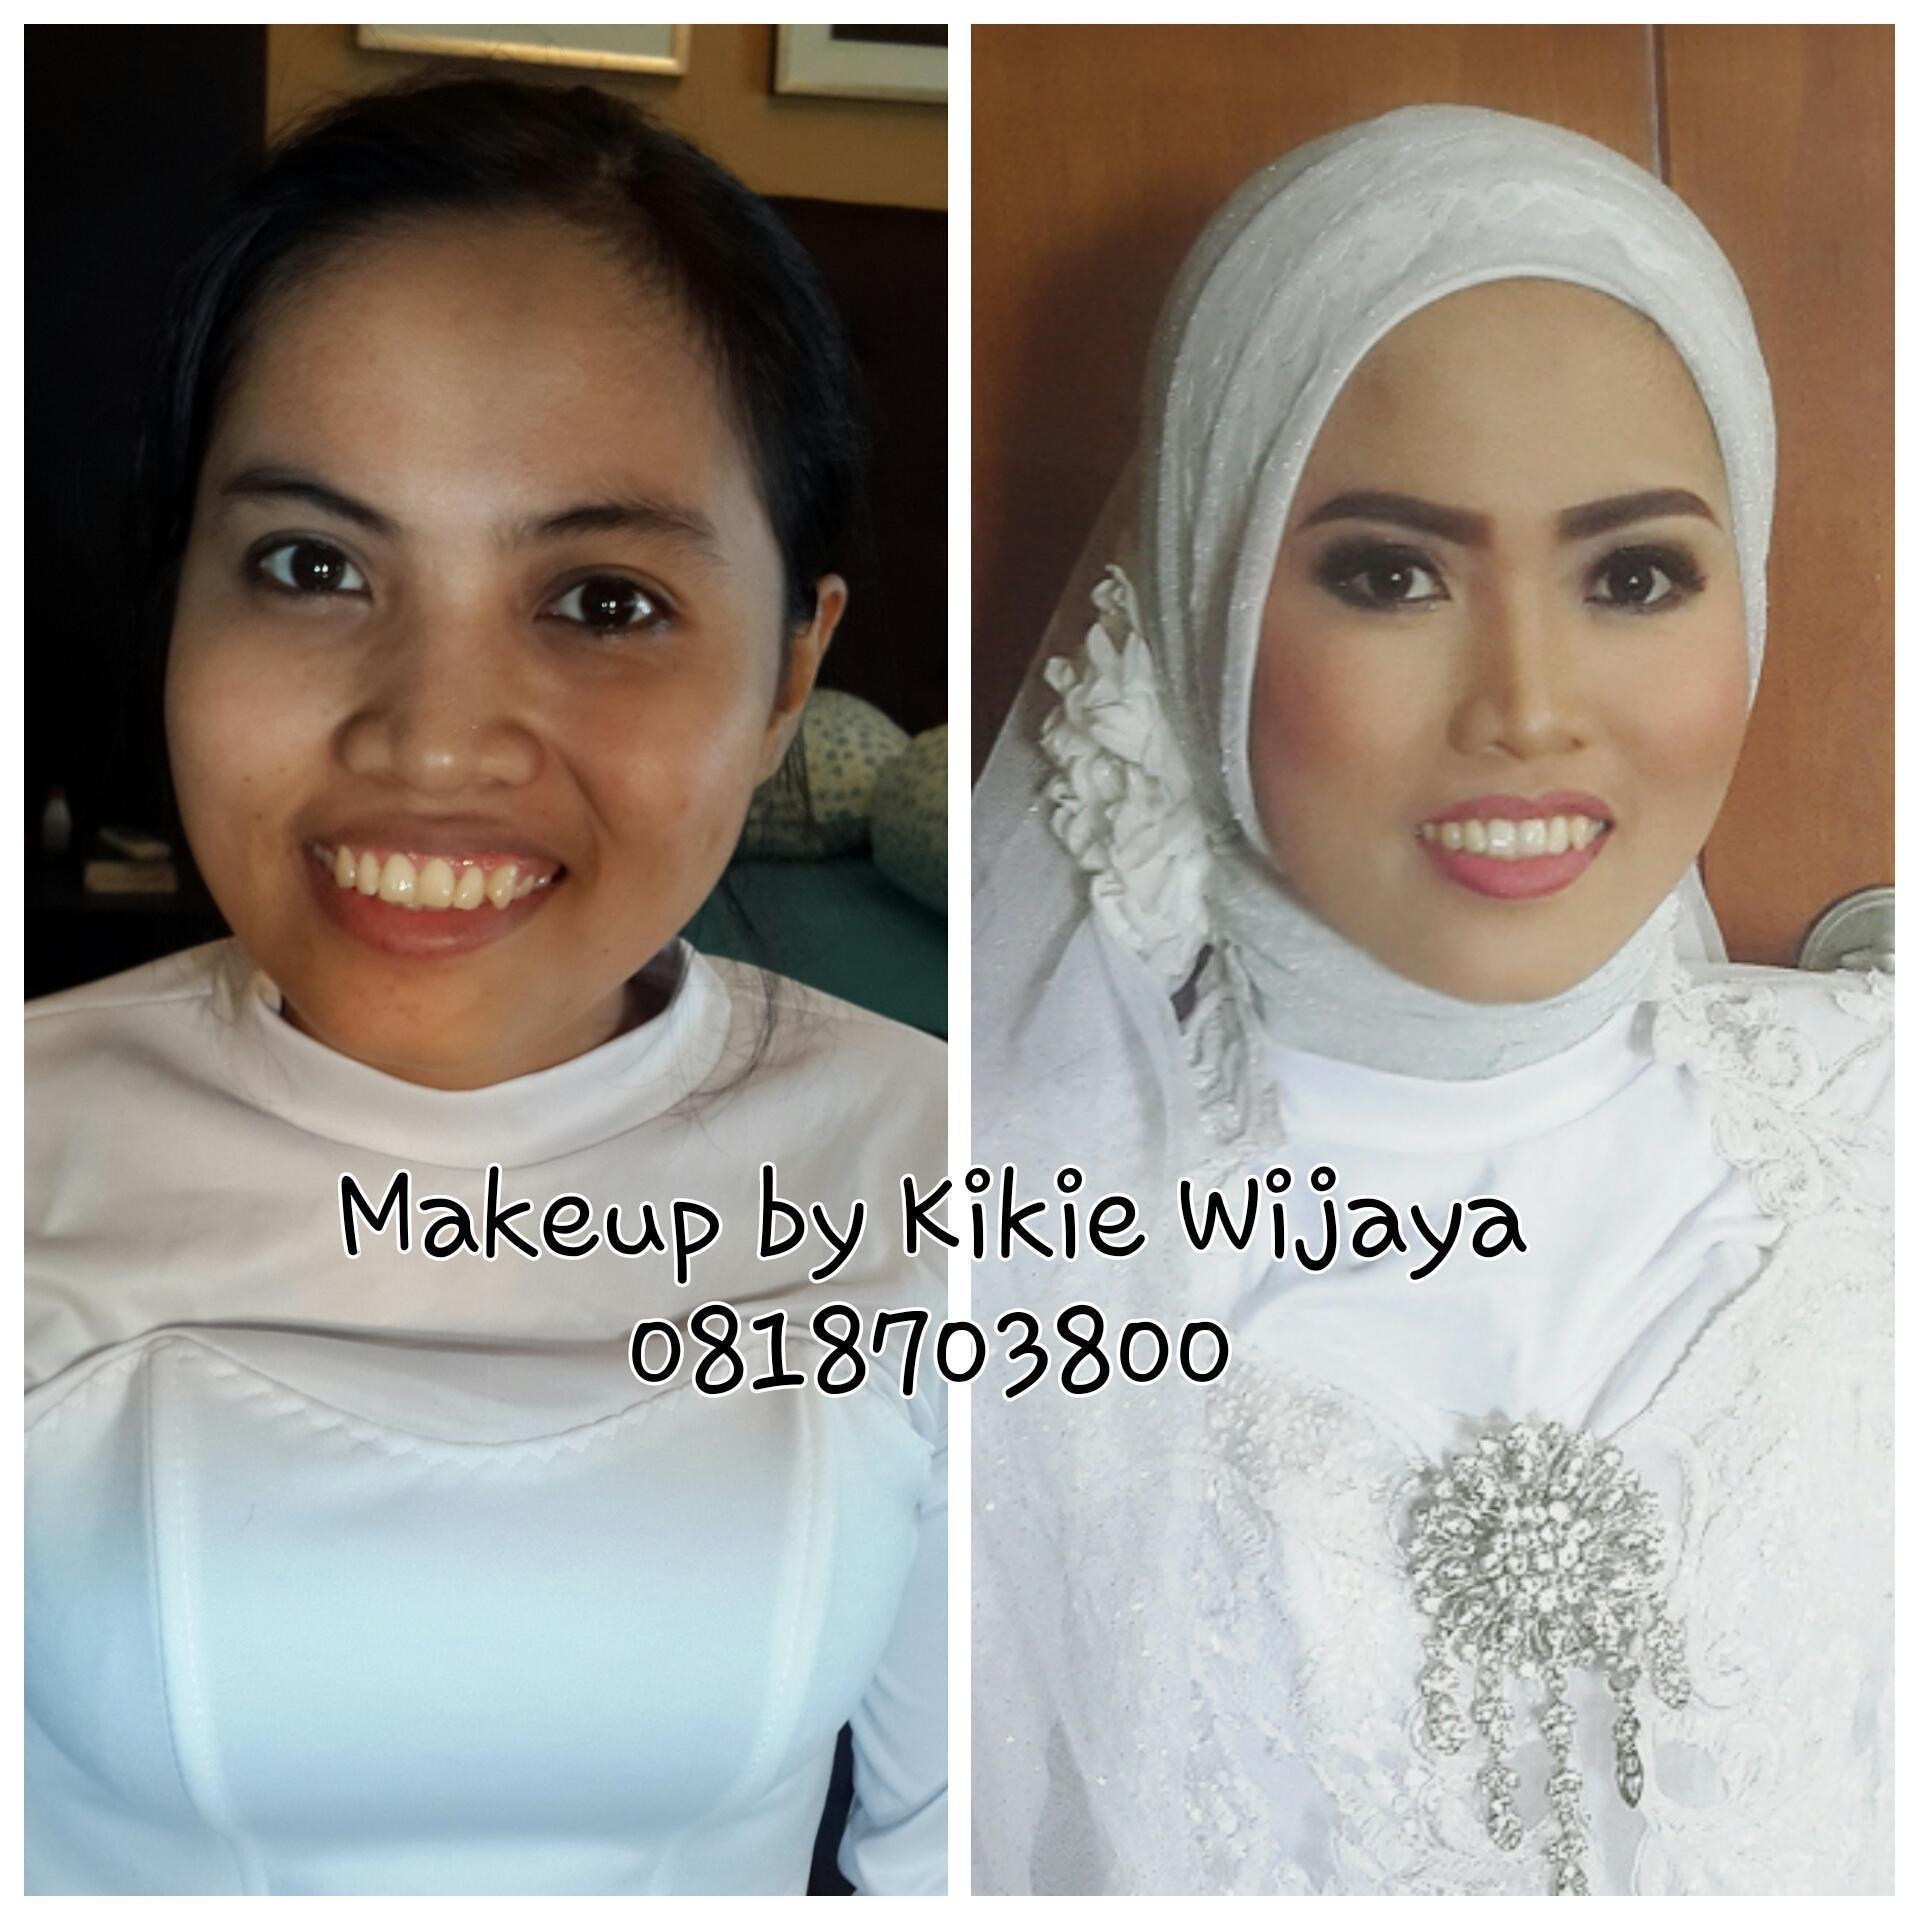 Kikie Wijaya Wedding and Professional Makeup Artist